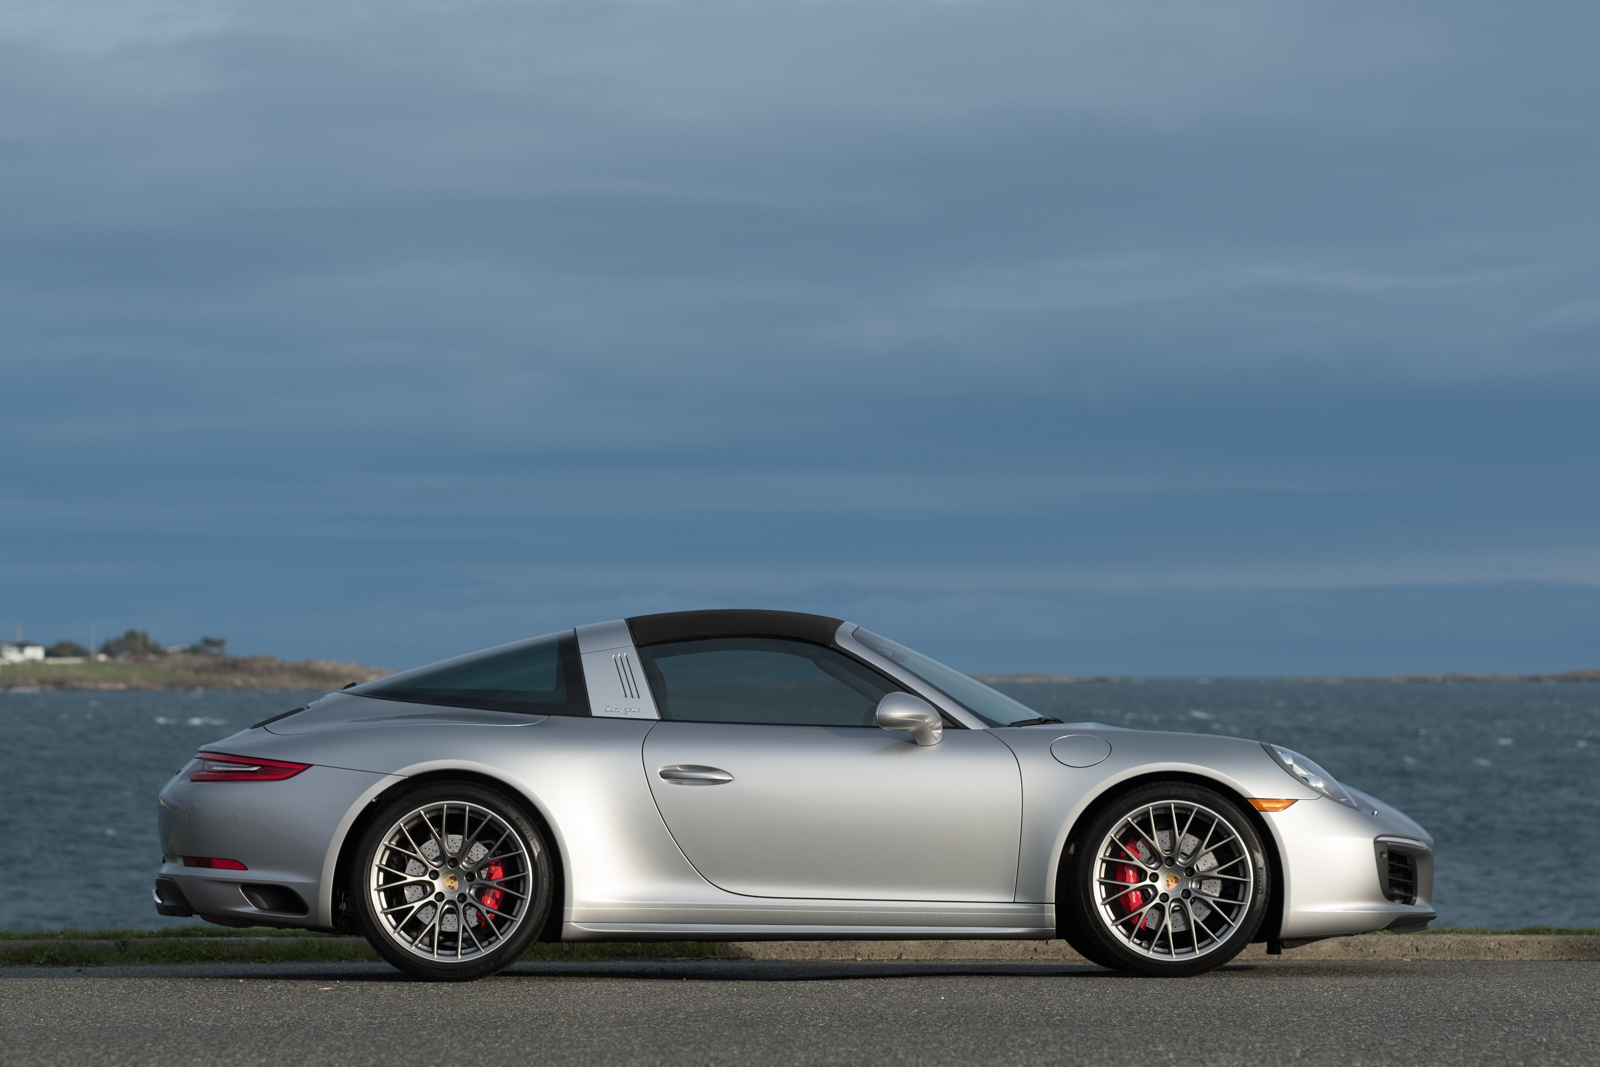 2017 Porsche 911 Targa 4s Silver Arrow Cars Ltd